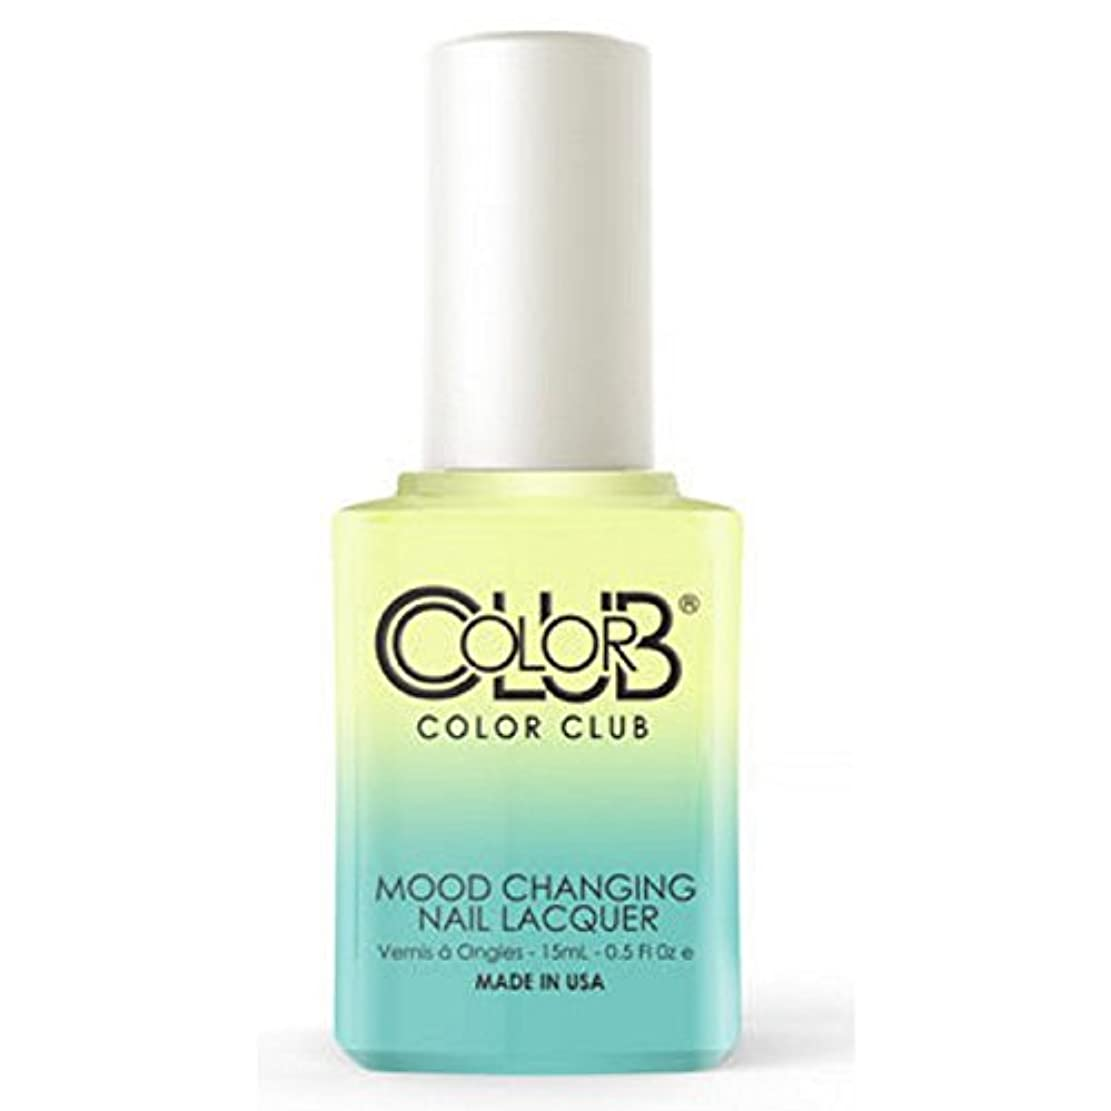 ゼリーポータブル恐ろしいColor Club Mood Changing Nail Lacquer - Shine Theory - 15 mL / 0.5 fl oz